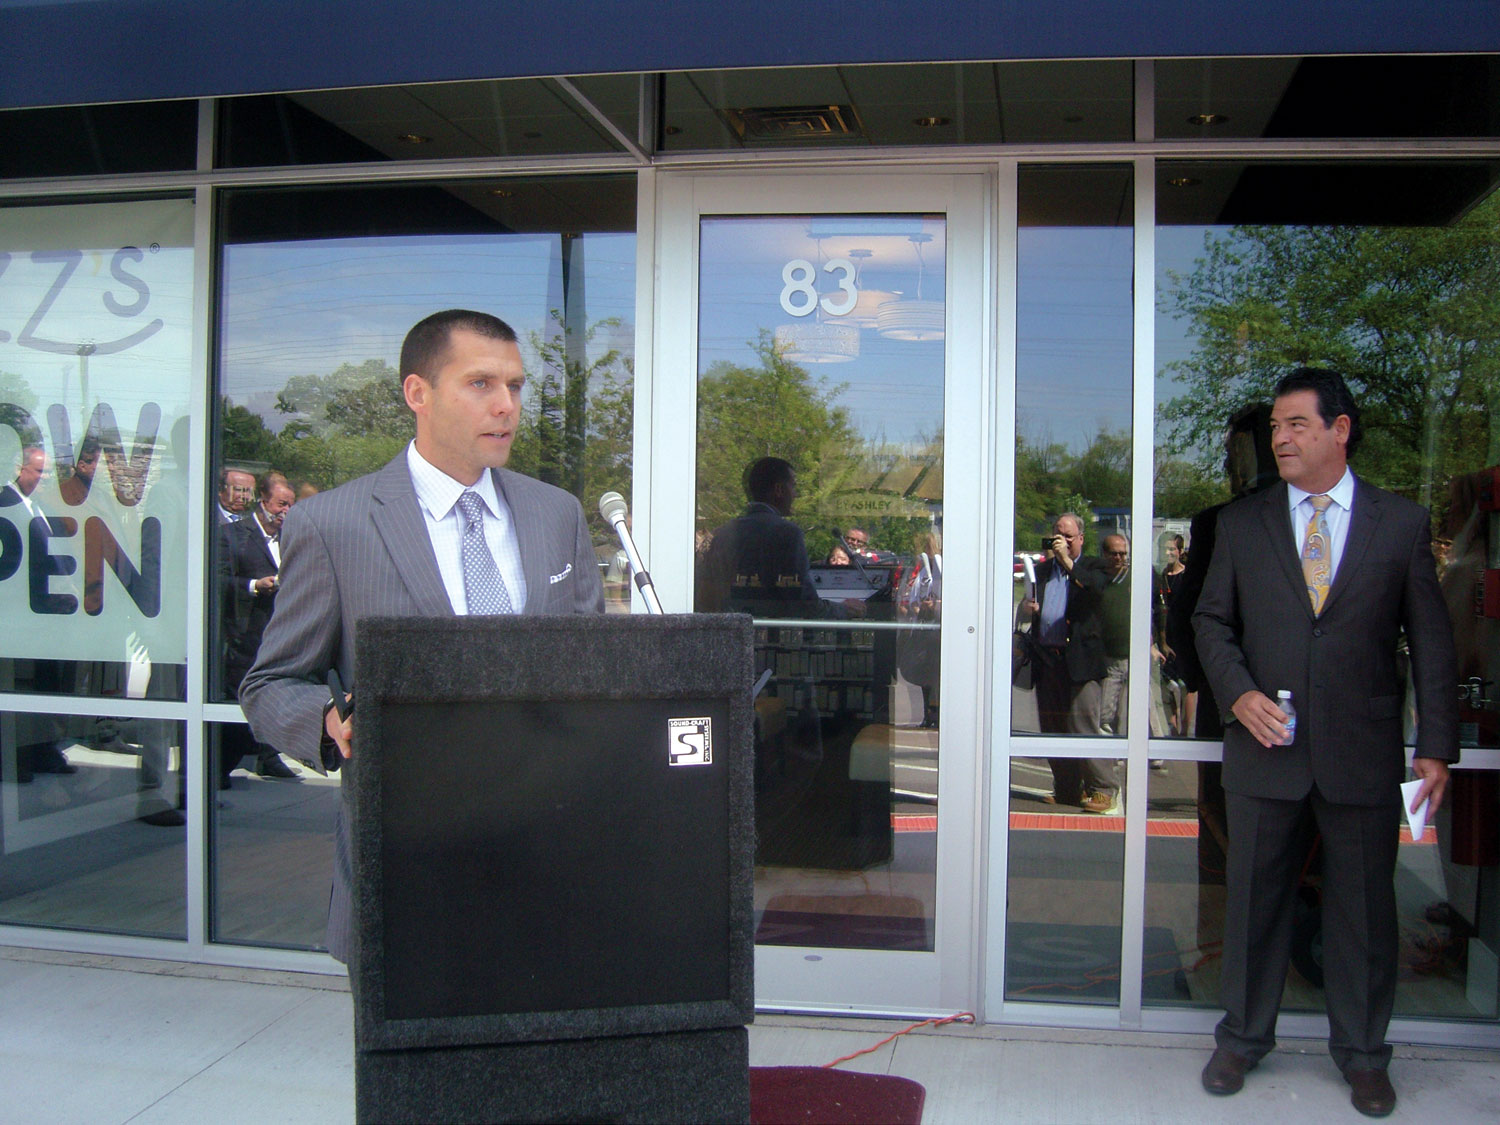 Ben Thorud of Ashley speaks at the ribbon-cutting ceremony for the new store.